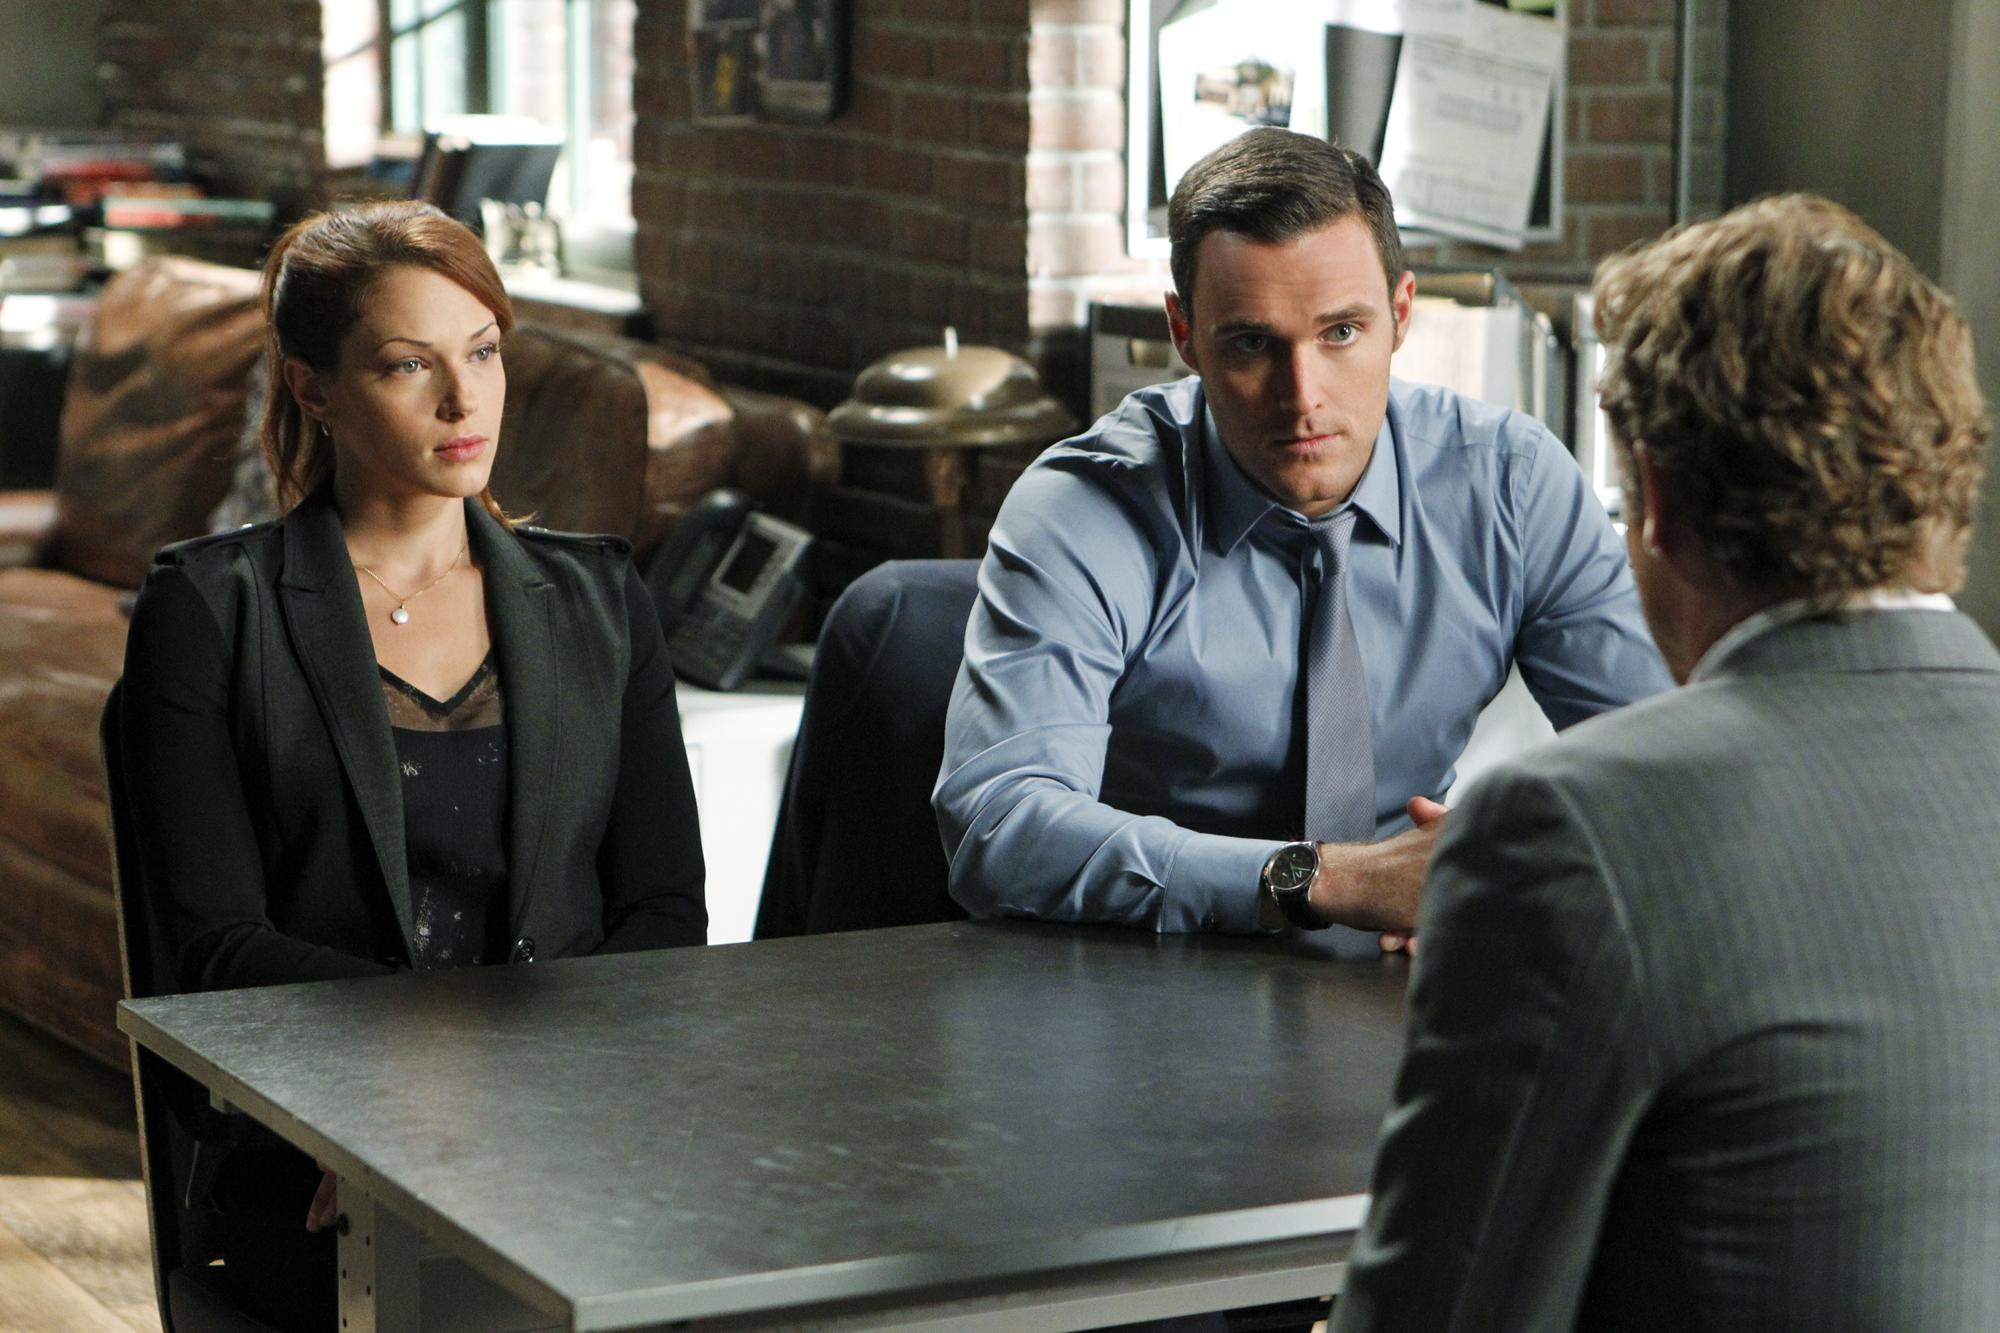 picture-of-simon-baker-amanda-righetti-and-owain-yeoman-in-the-mentalist-large-picture